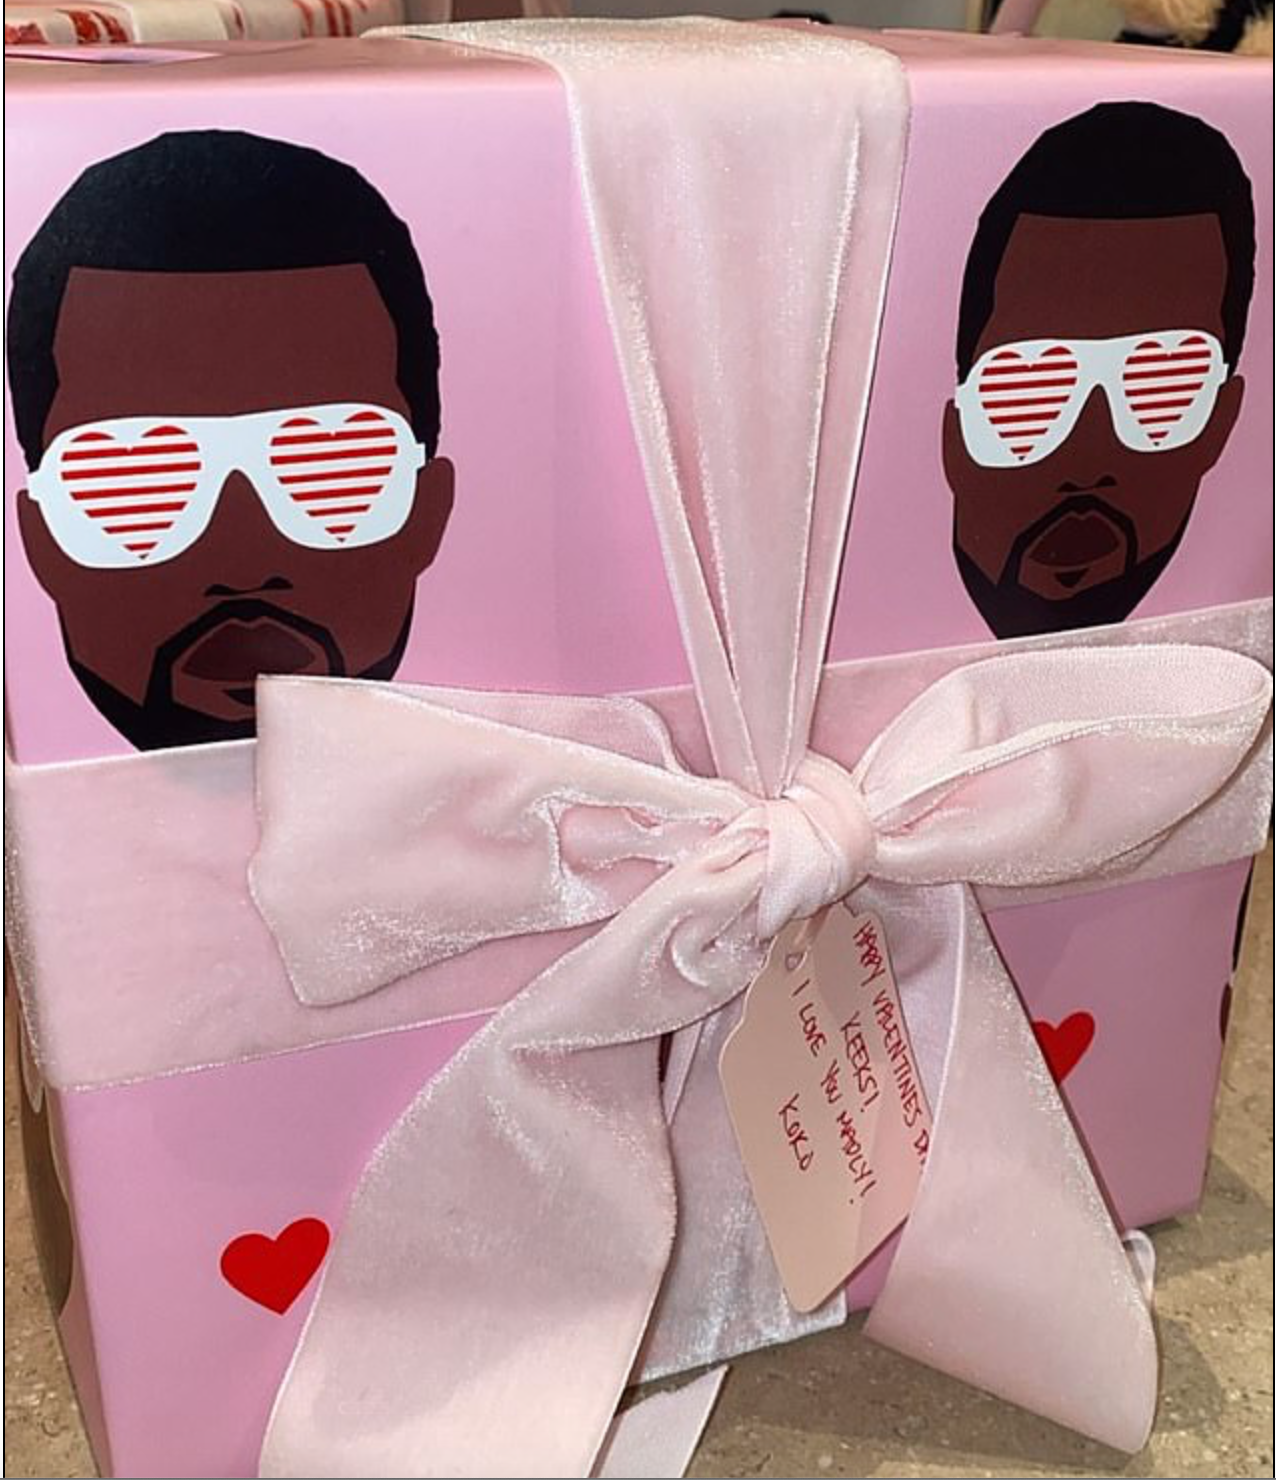 Above: The Valentine's Day gift Khloe Kardashian gave to her sis.